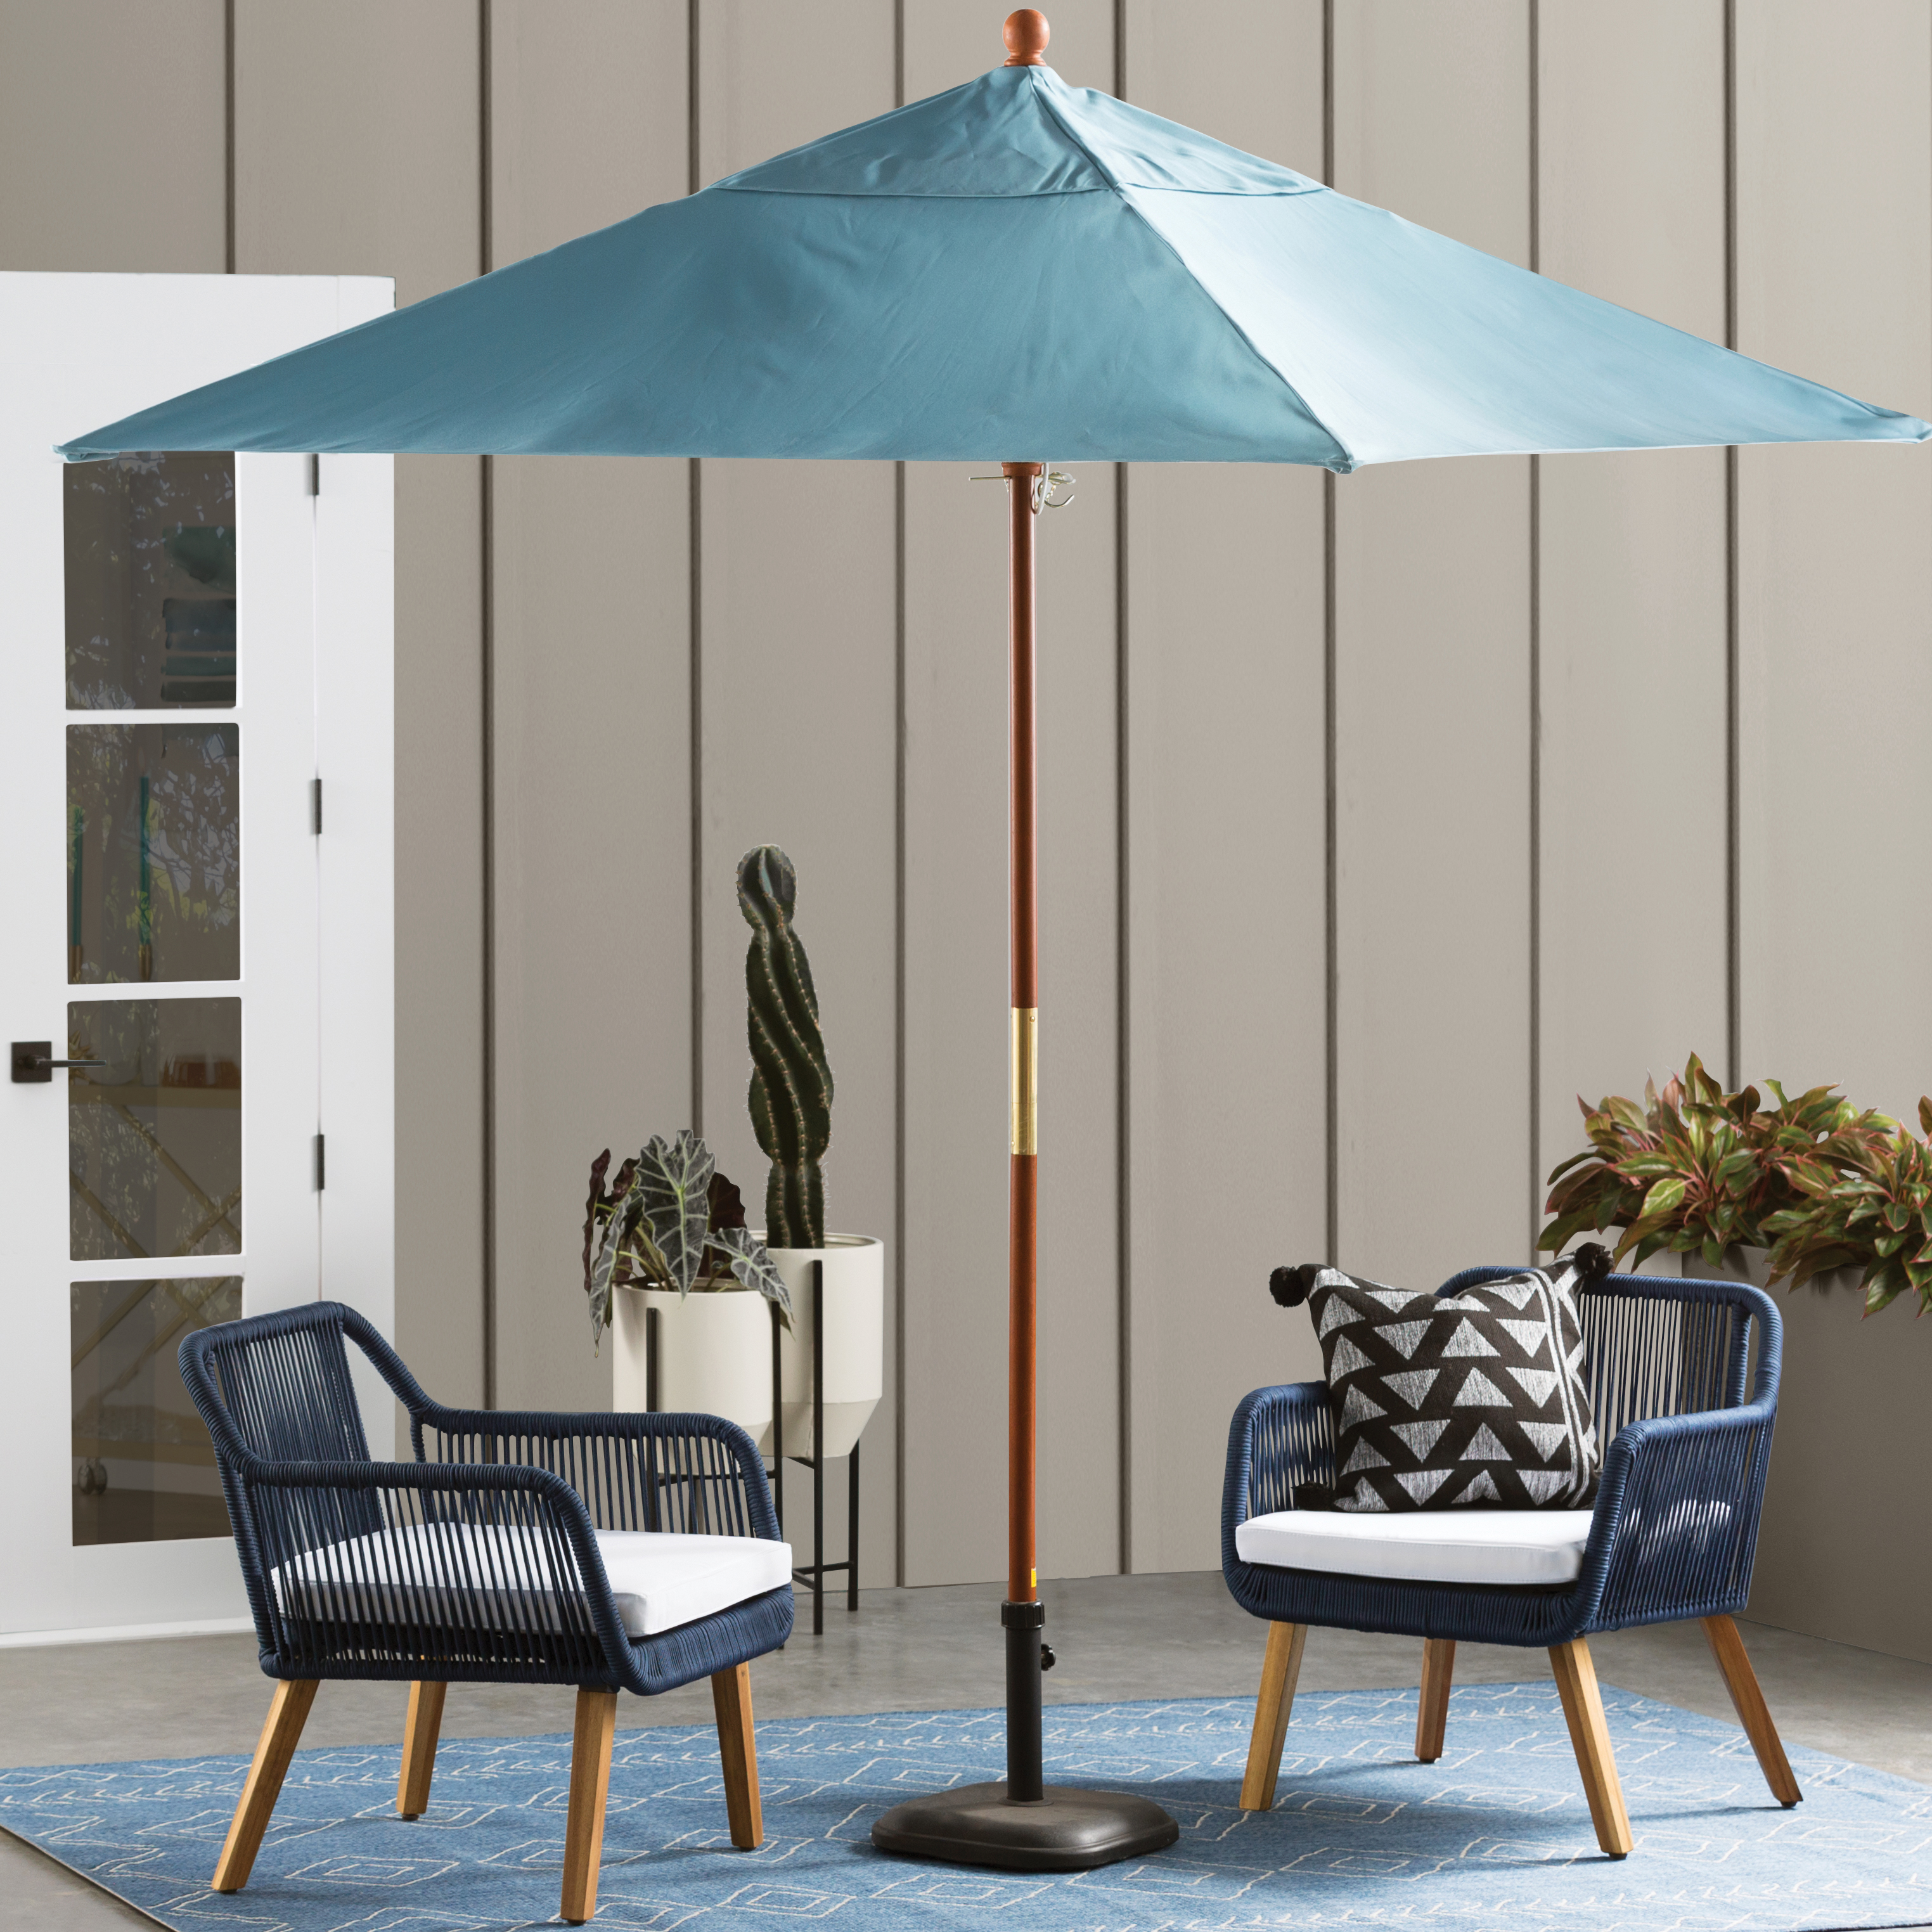 Modern Outdoor Chair: Modern Outdoor Furniture + Decor